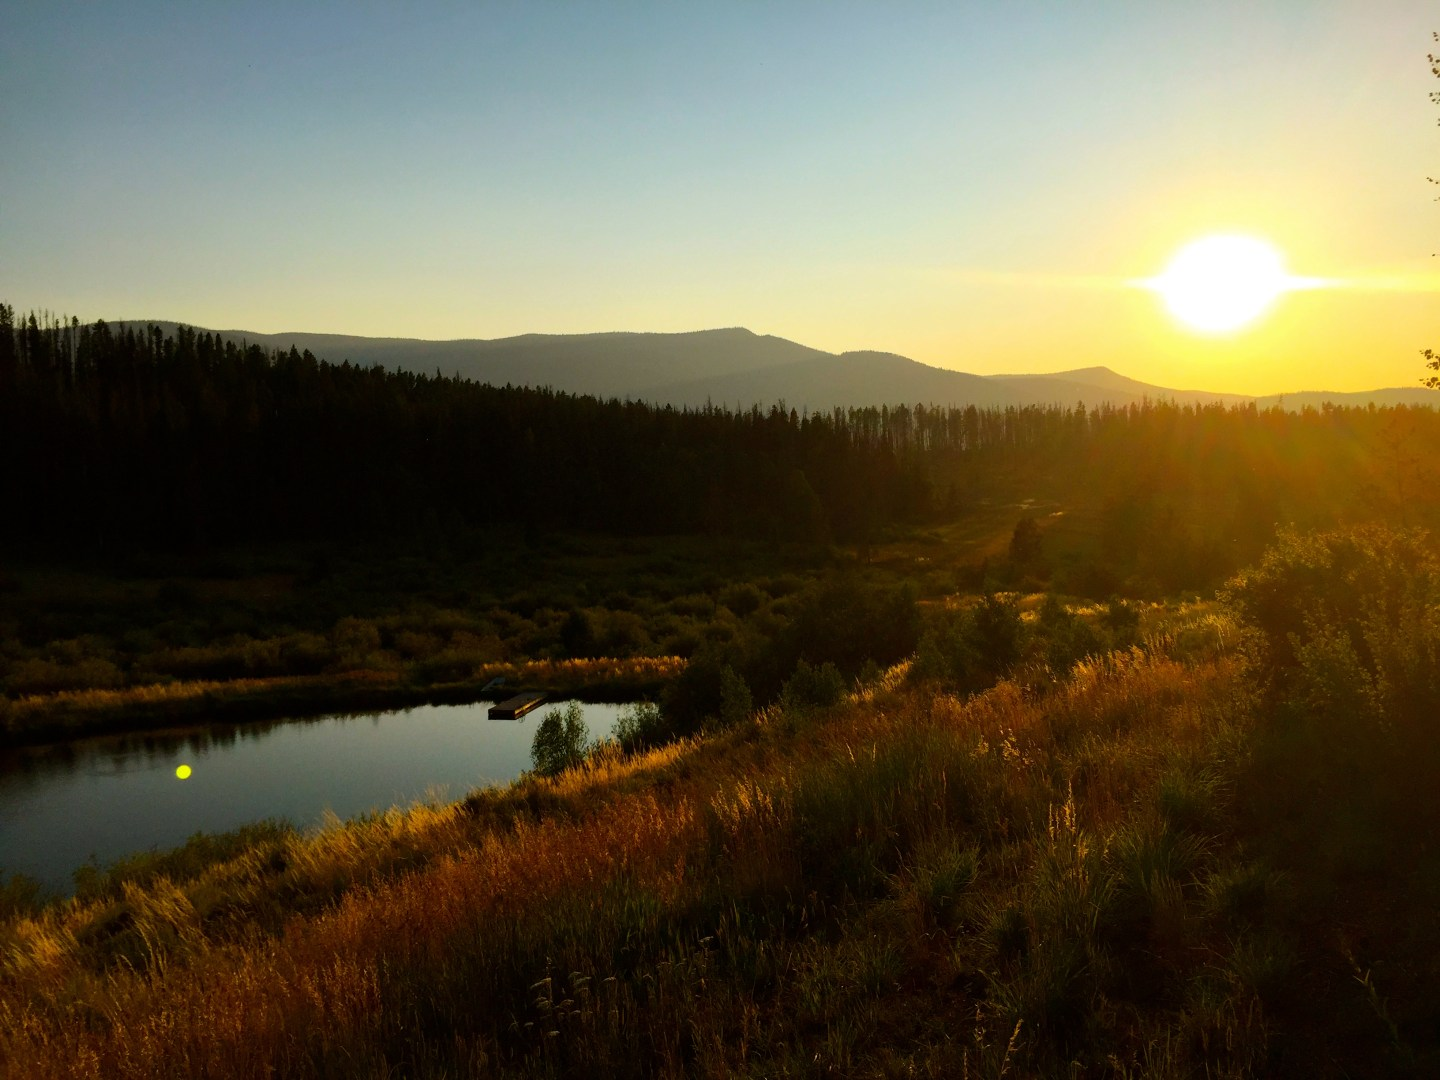 Sunset in Steamboat Springs, CO.